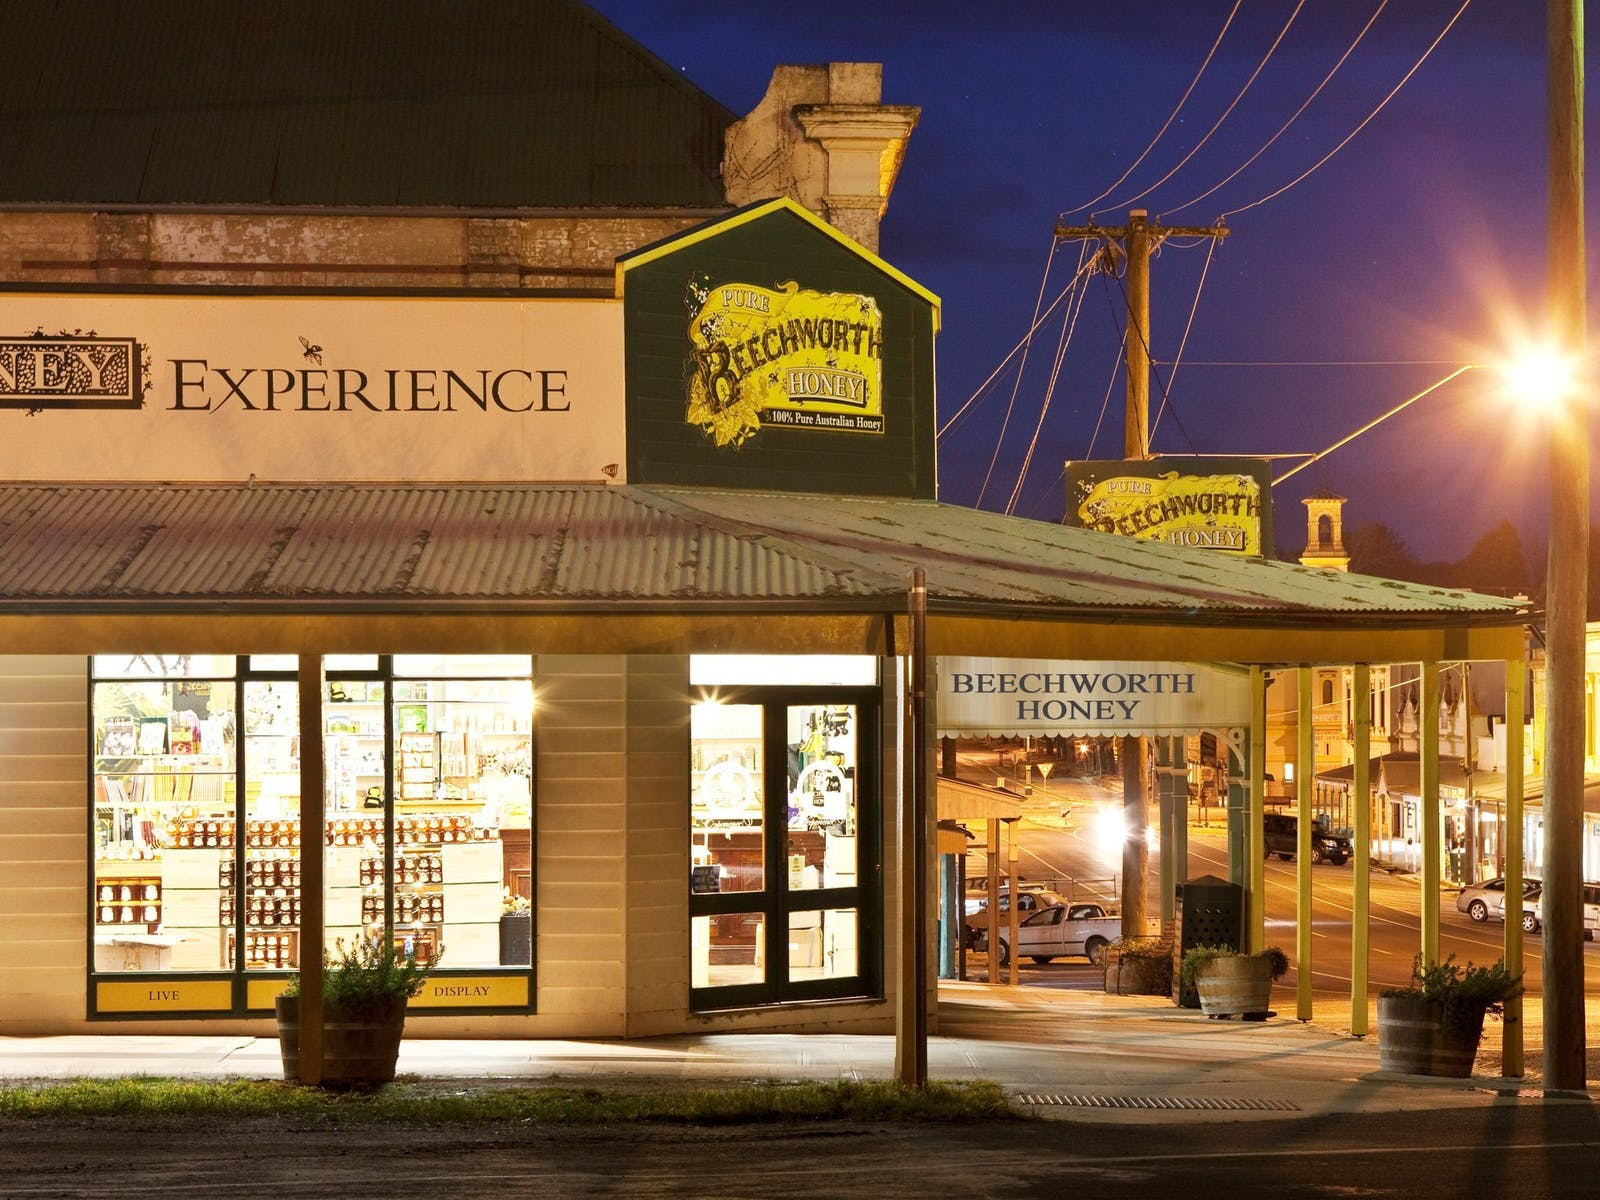 Visit Beechworth Honey Experience